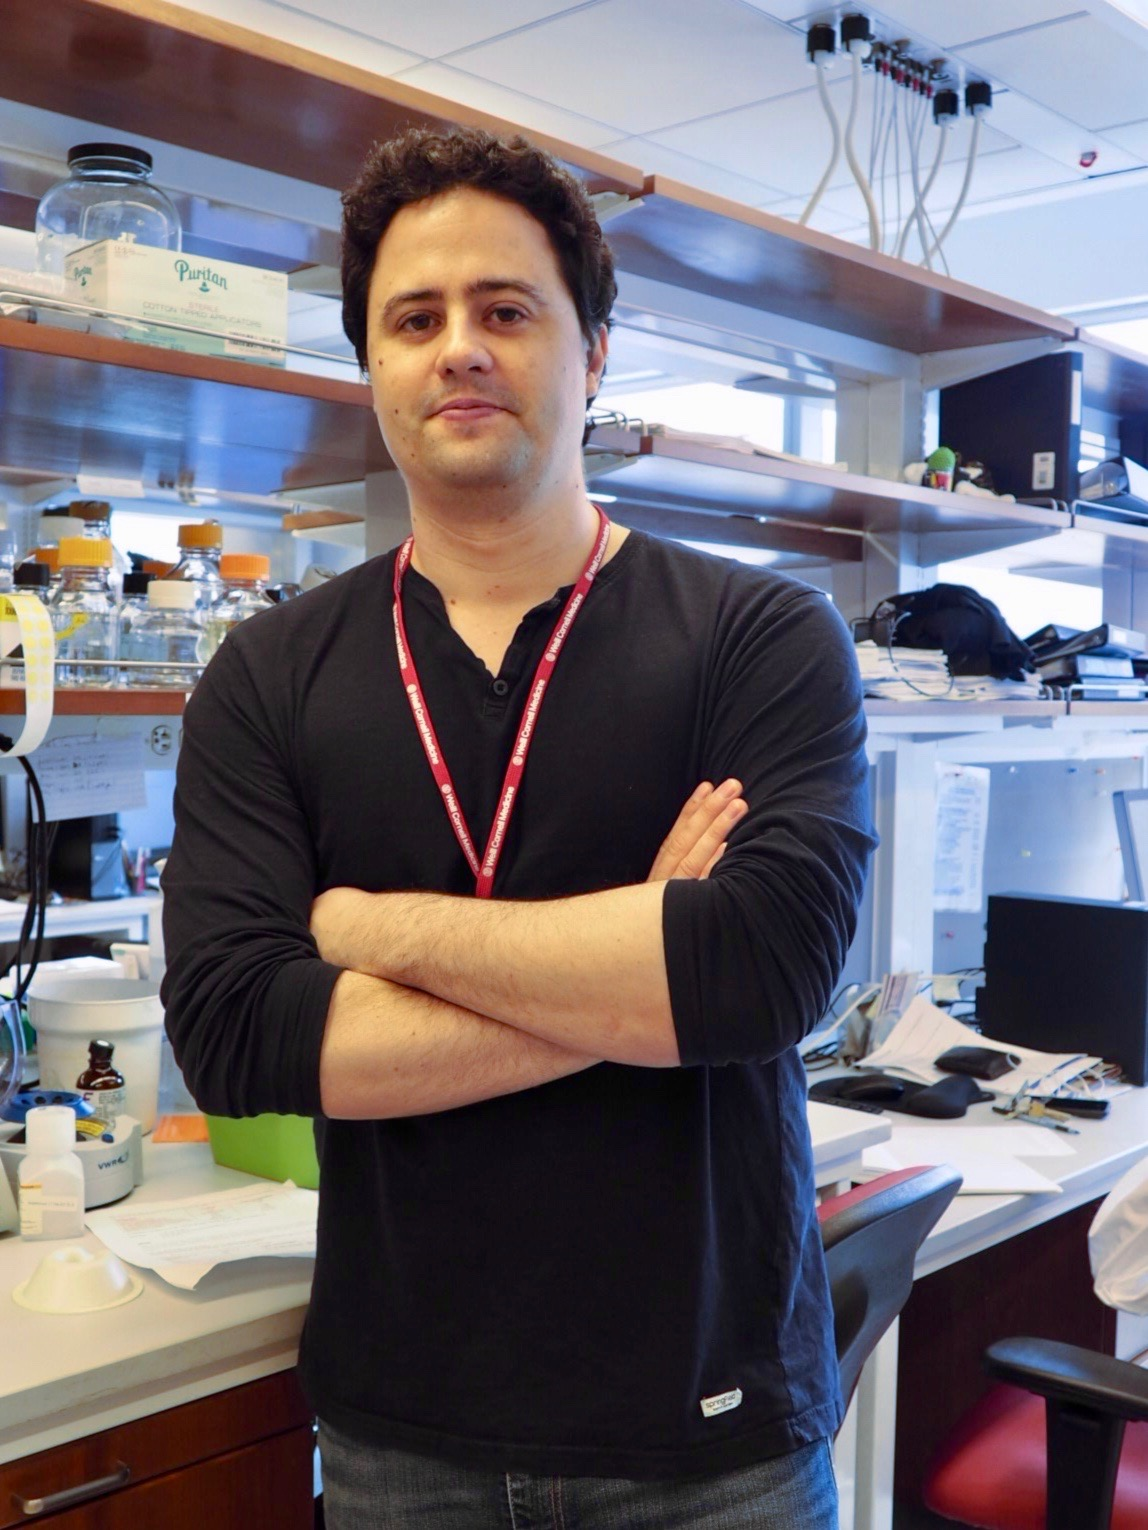 Tiago Alfredo Rodrigues Beites - Tiago received his PhD degree in Biology from the University of Porto, Portugal. During graduate school he worked with Streptomyces, a genus known to be a prolific source of antibiotics, focusing on the optimization of secondary metabolite biosynthesis. He joined Sabine Ehrt's laboratory in March 2015. As a postdoctoral researcher, he has been interested in questions regarding the interface between energetic and carbon metabolism of Mycobacterium tuberculosis. Specifically, Tiago's work aims at 1) unveiling respiratory chain redundancies and their implications on drug development, and 2) the identification and characterization of genes required for survival in lipid-rich microenvironments.